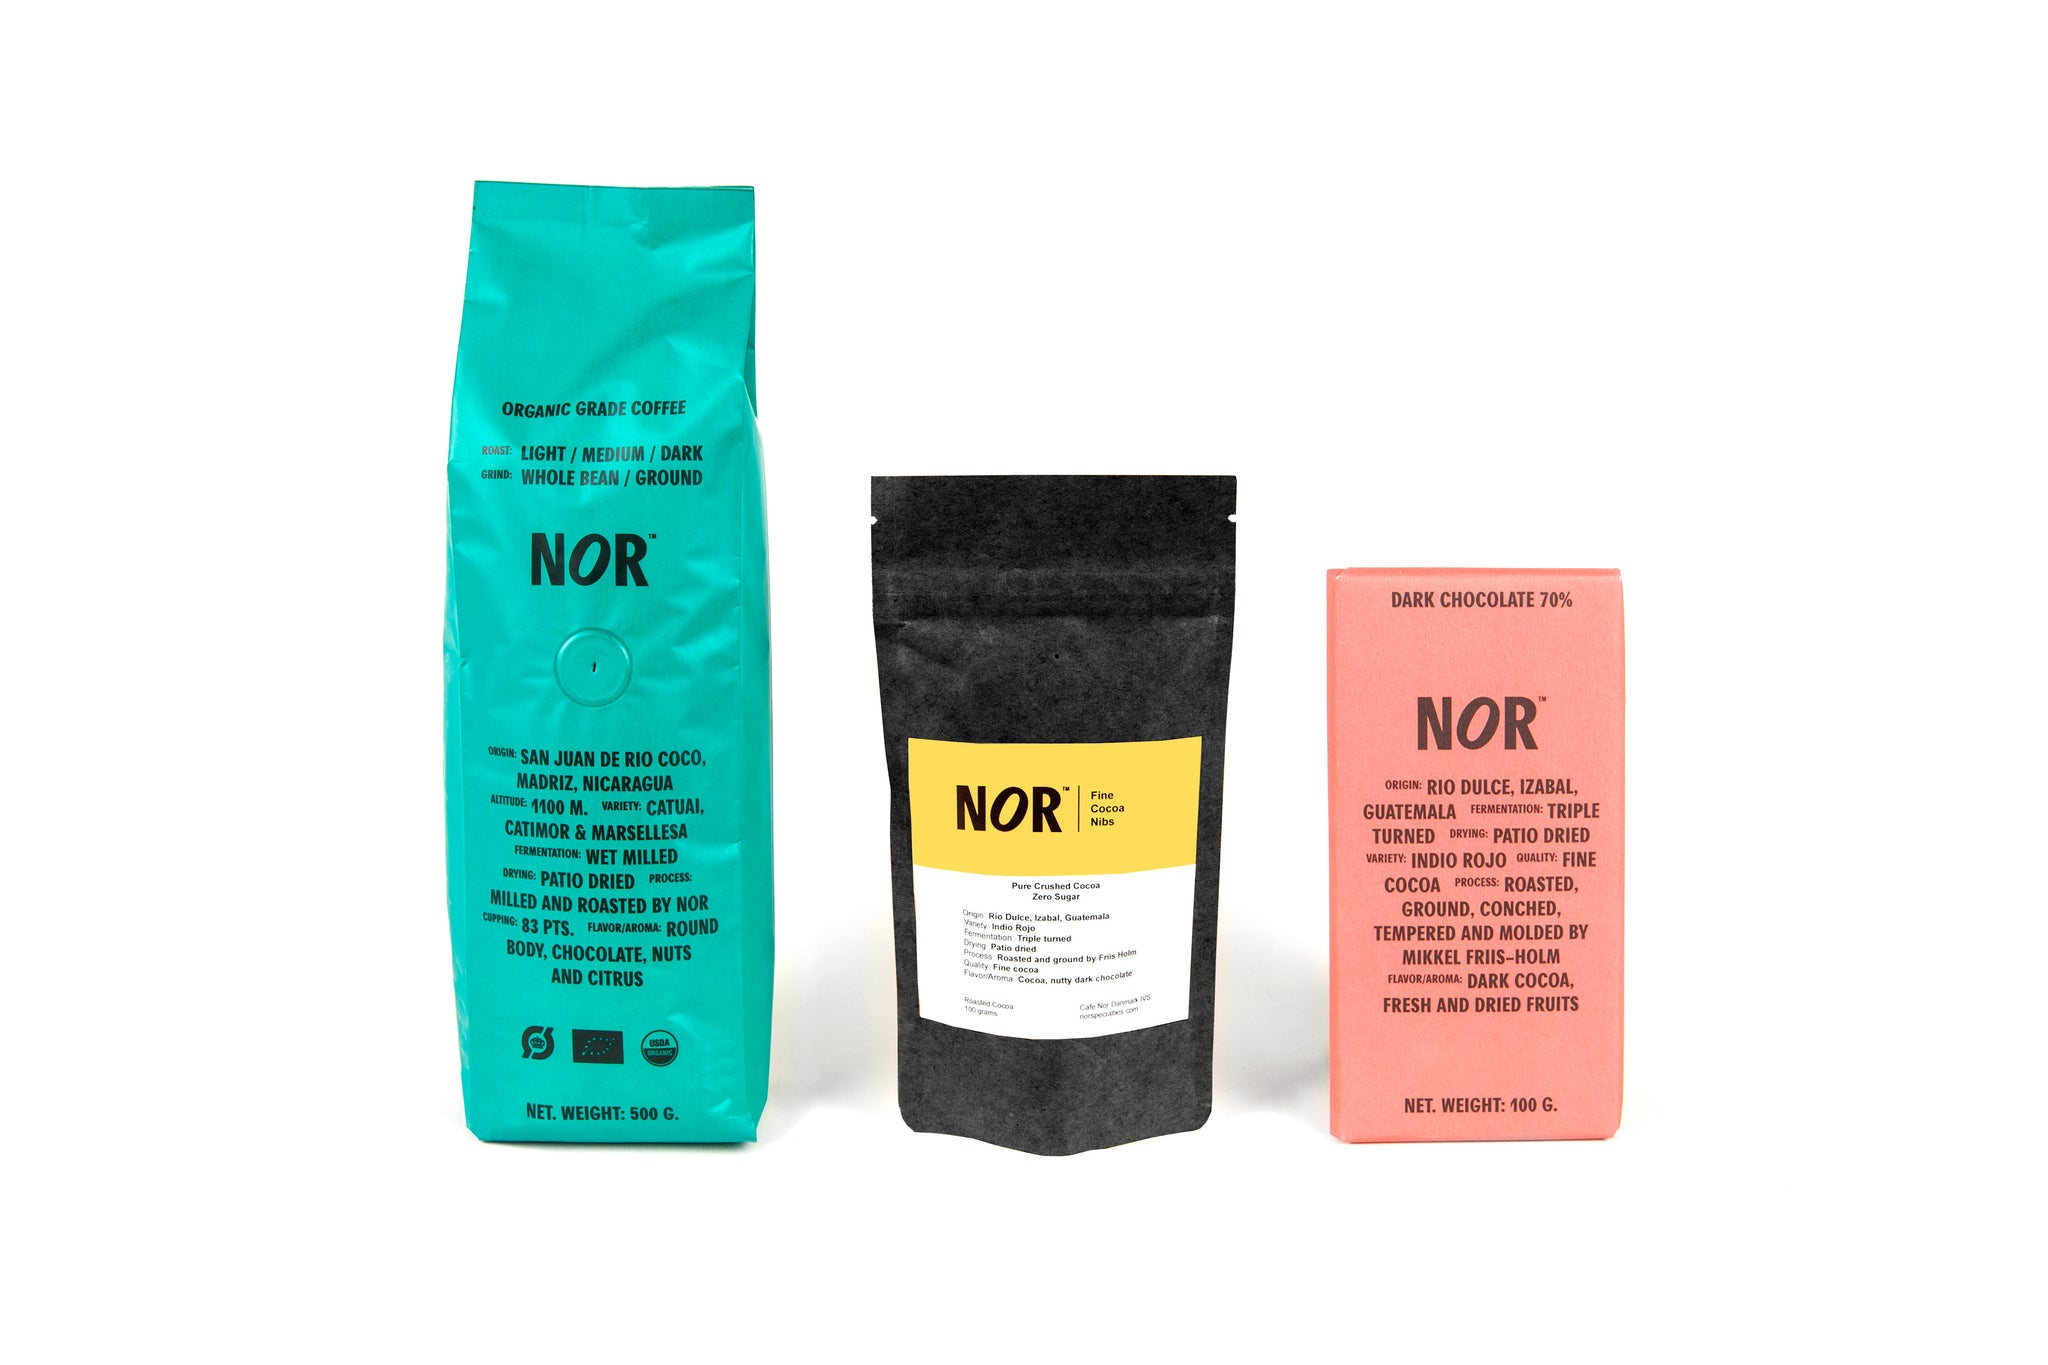 A bag of NOR organic coffee (500g)